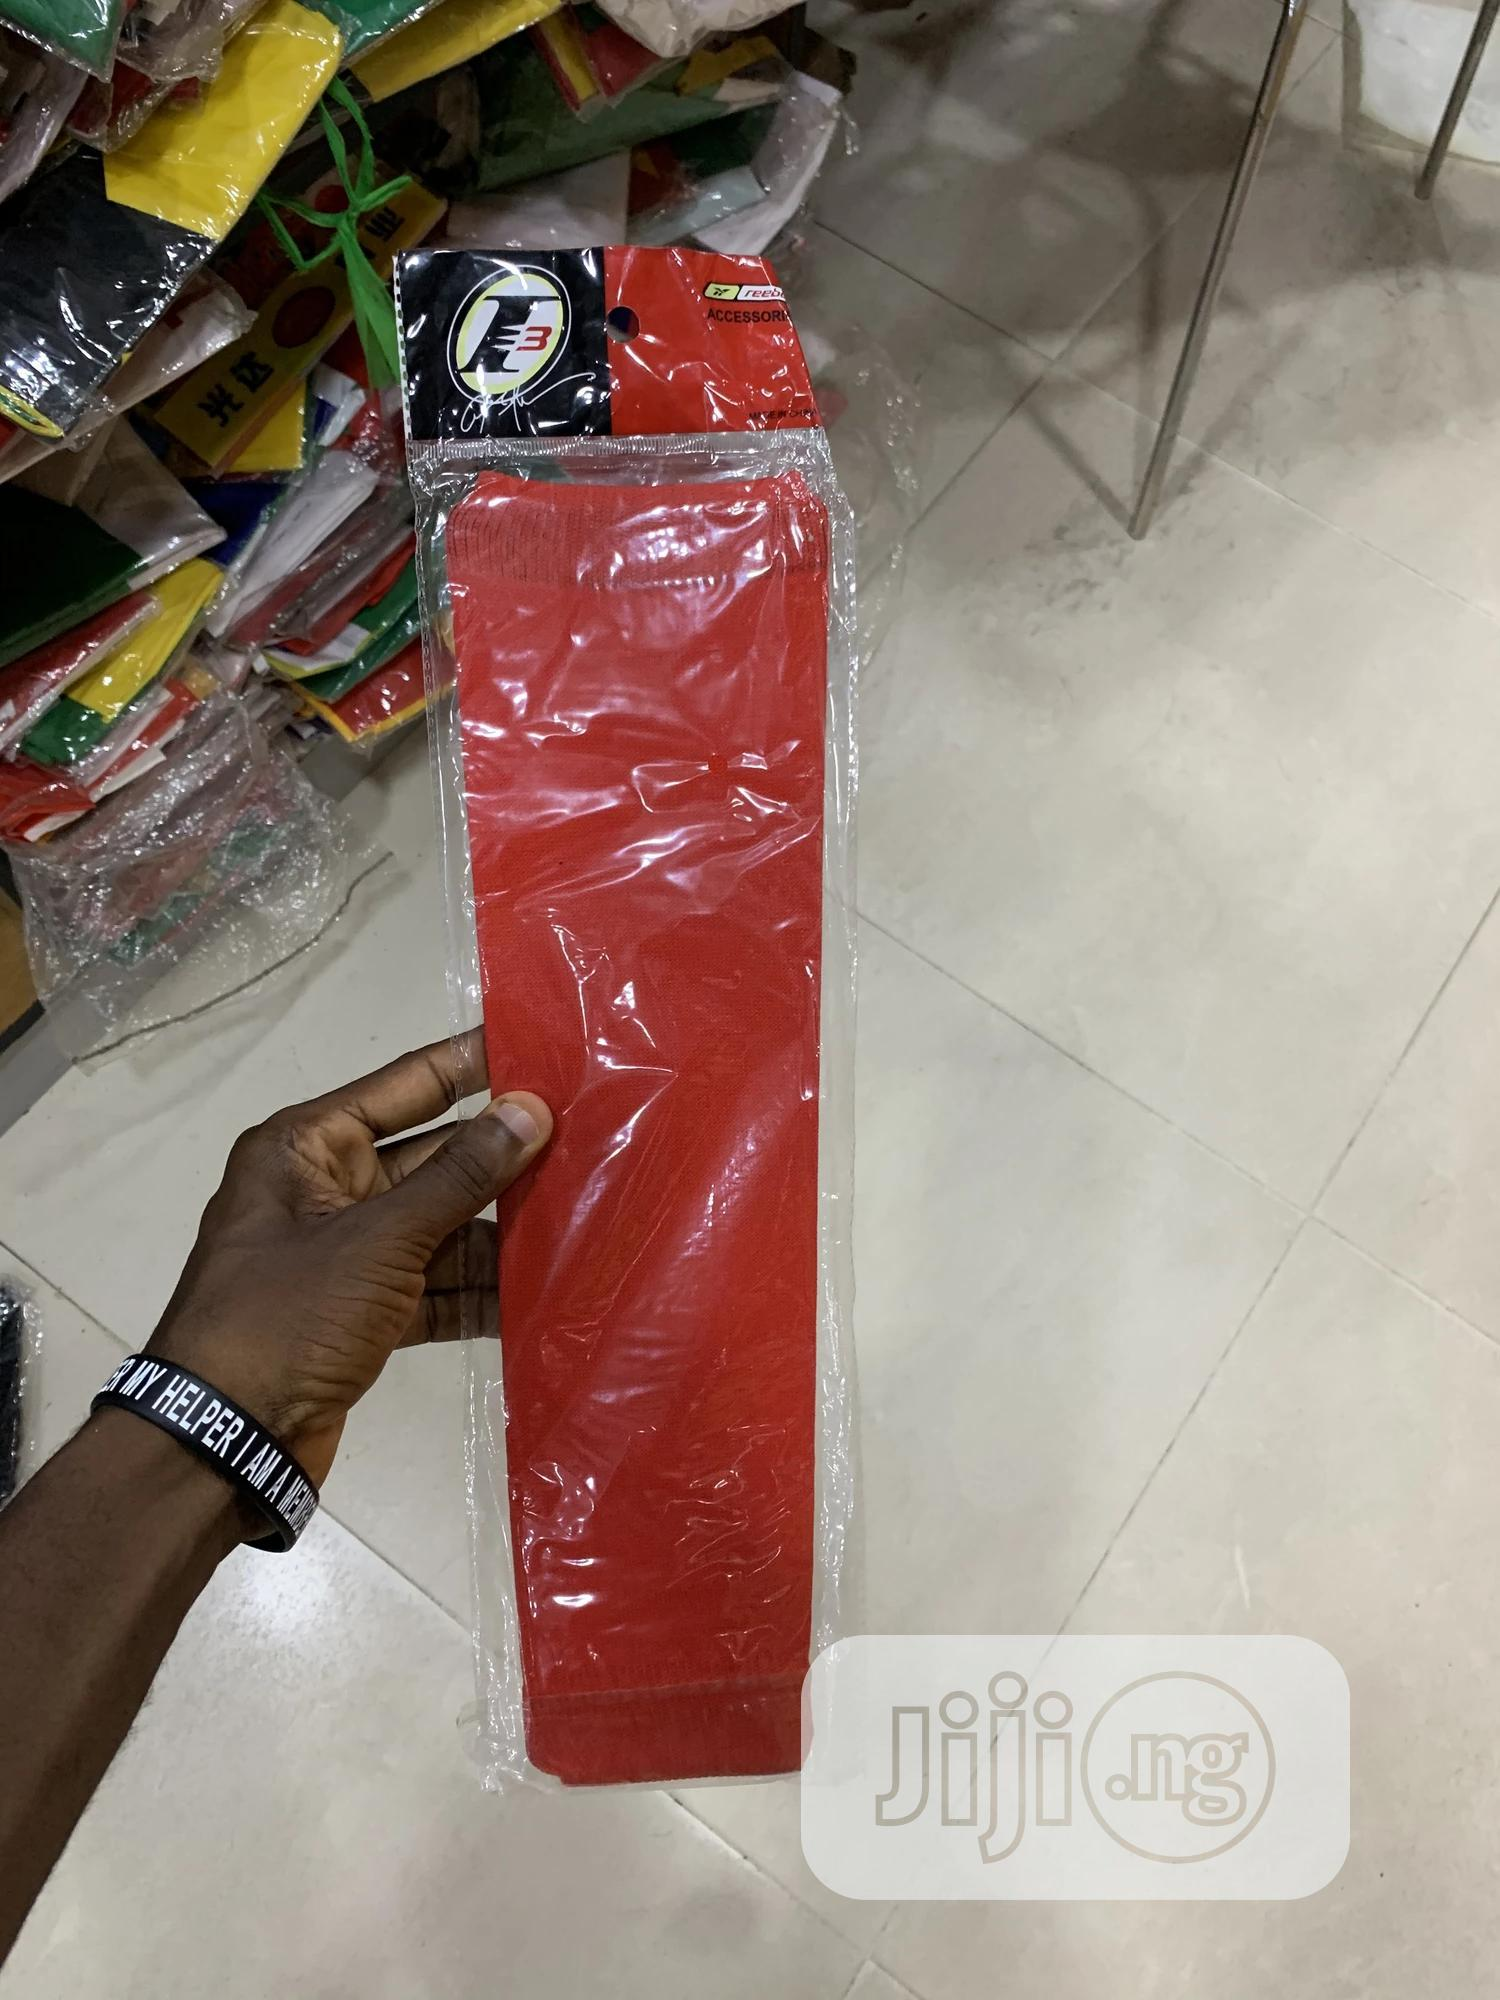 Basketball Hand Socks | Clothing Accessories for sale in Ojota, Lagos State, Nigeria